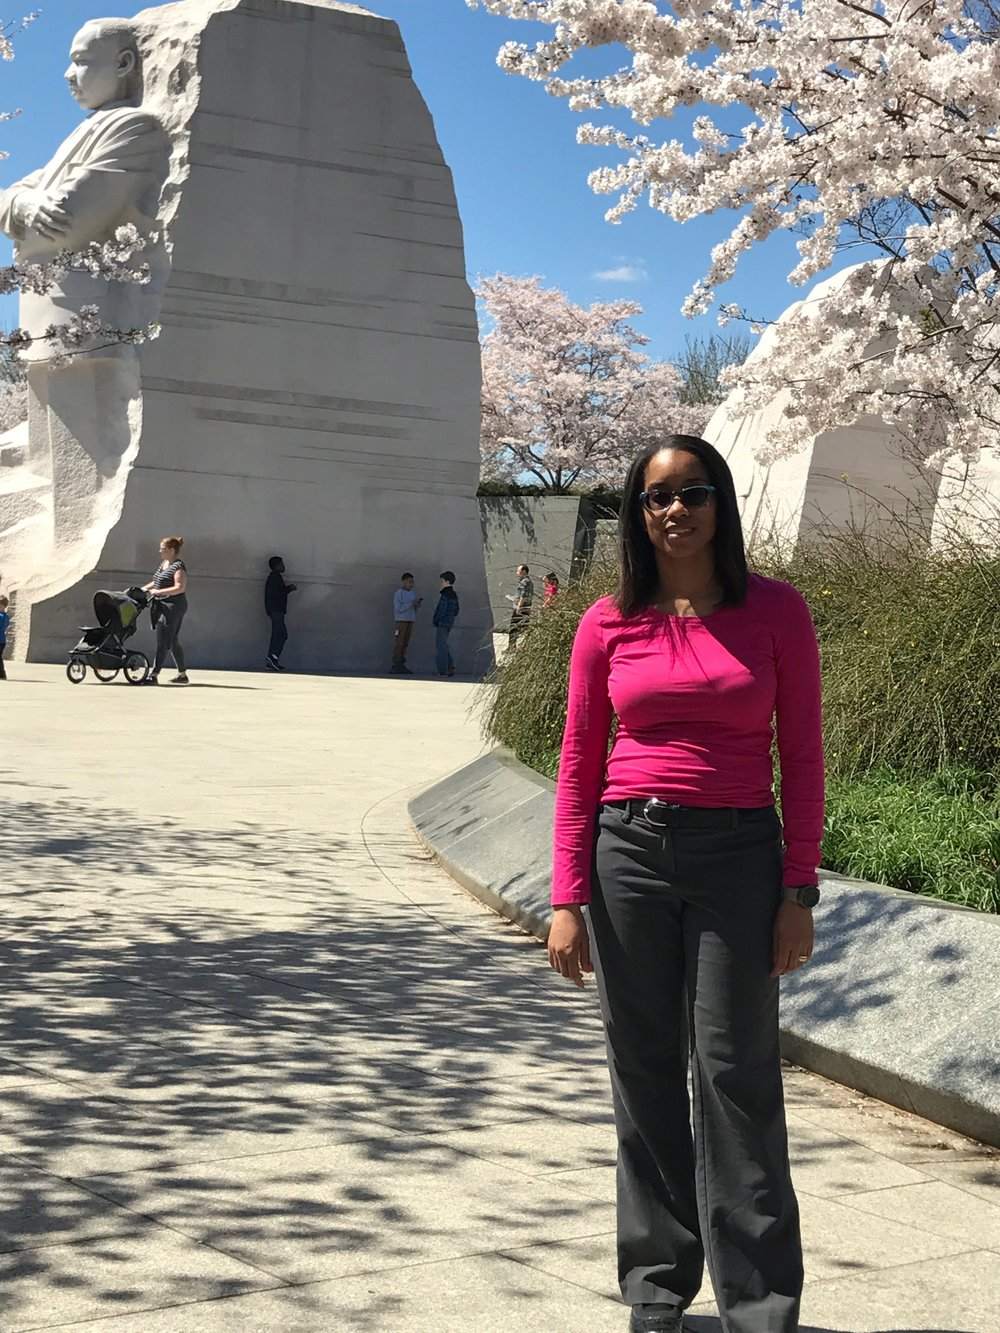 Educator Barnes at the Dr. King Memorial in Washington D.C.